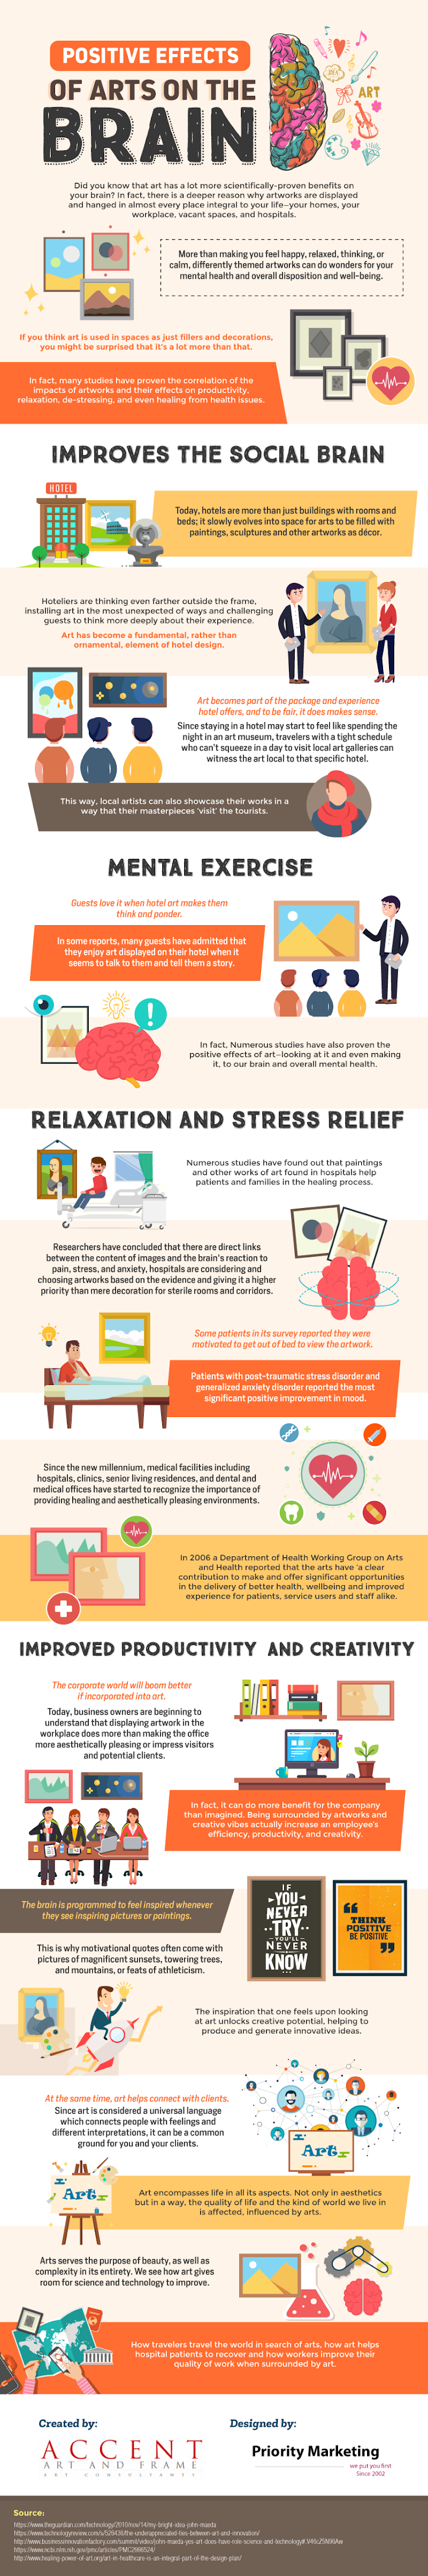 Positive Effects of Arts On the Brain #infographic #Arts #Brain #Positive Effects #Effect